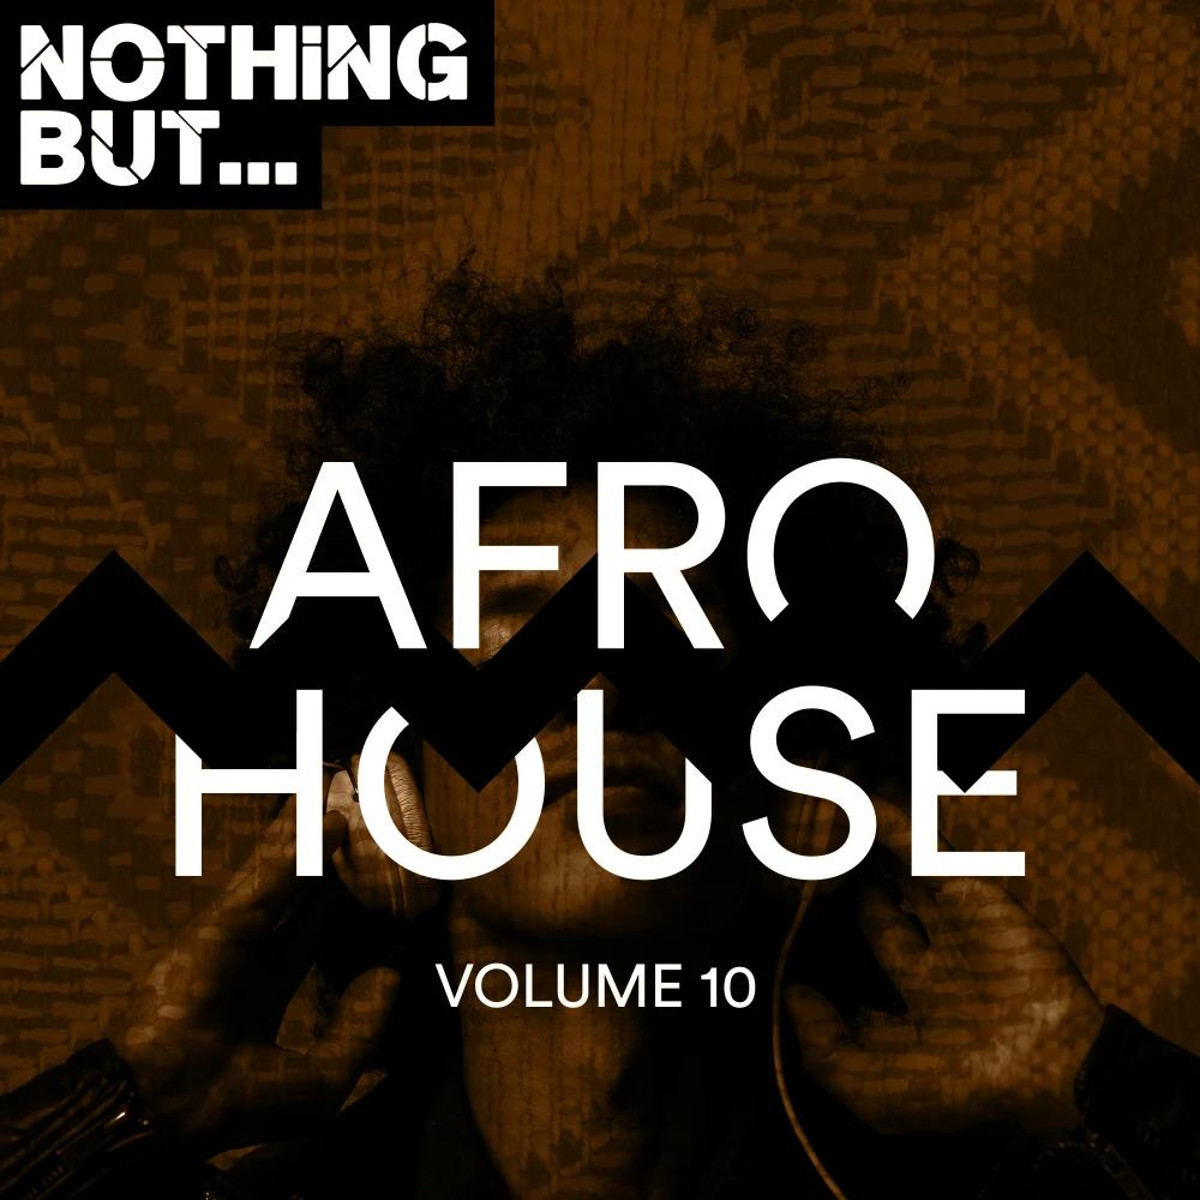 VA - Nothing But... Afro House, Vol. 10